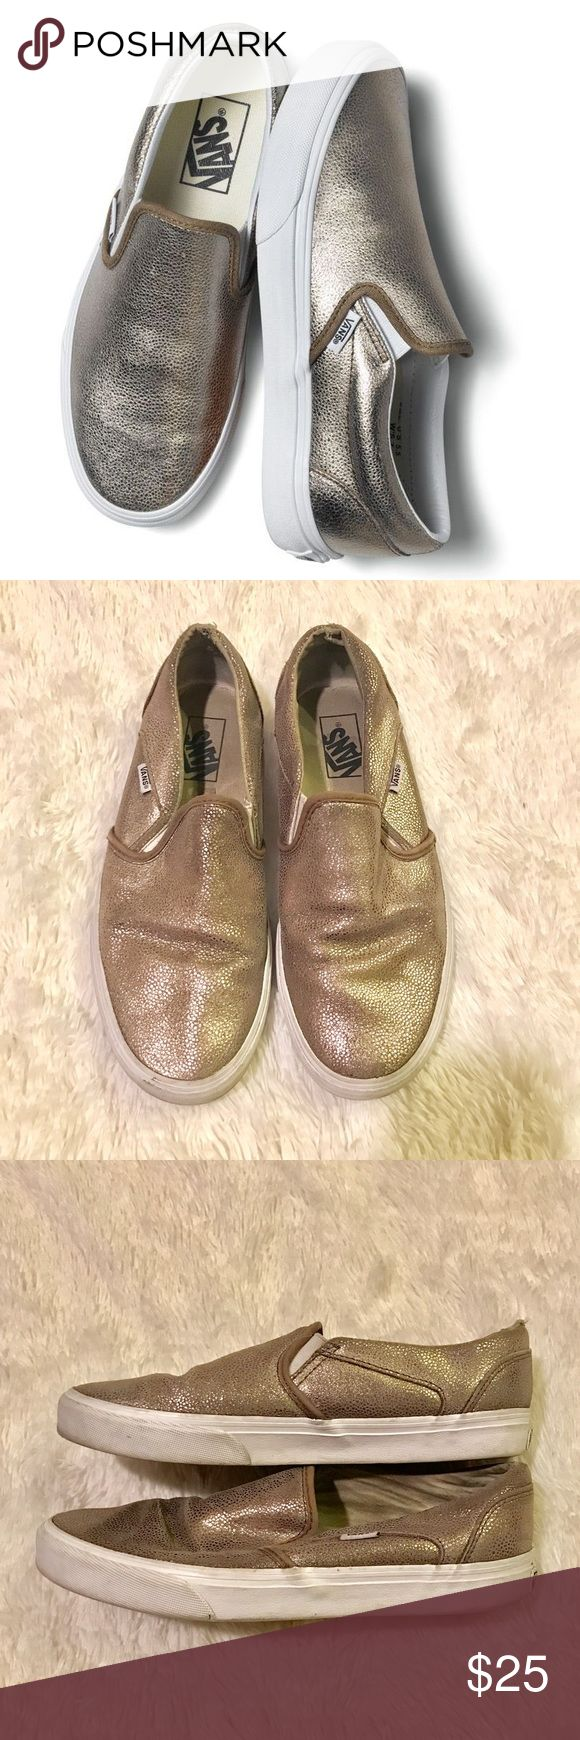 BLACK FRIDAY EARLY SALE -Gold Sparkle Slip On Vans Slip On Vans with a gold sparkle. Almost snakelike looks to them. They are used in good condition. Slight ear at the heel. Otherwise the rubber part can most likely be cleaned. Still have a lot of life left. Size 9.5. Vans Shoes